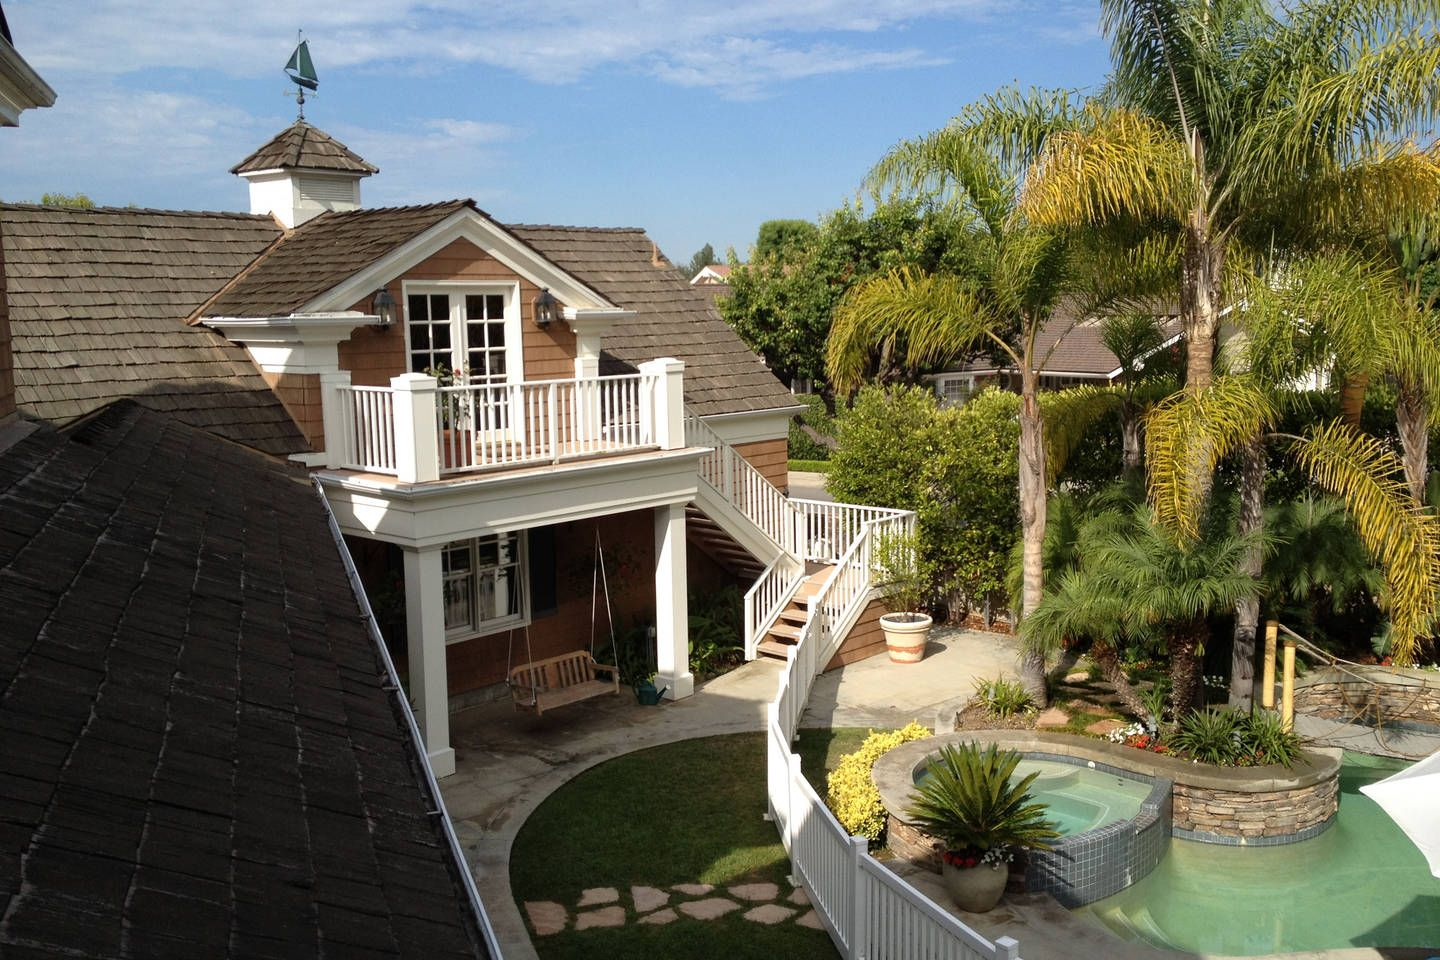 Gorgeous Carriage House Studio Vacation Rental In Huntington Beach California View More Huntingtonbeachcal Newport Beach Beach Vacation Rentals